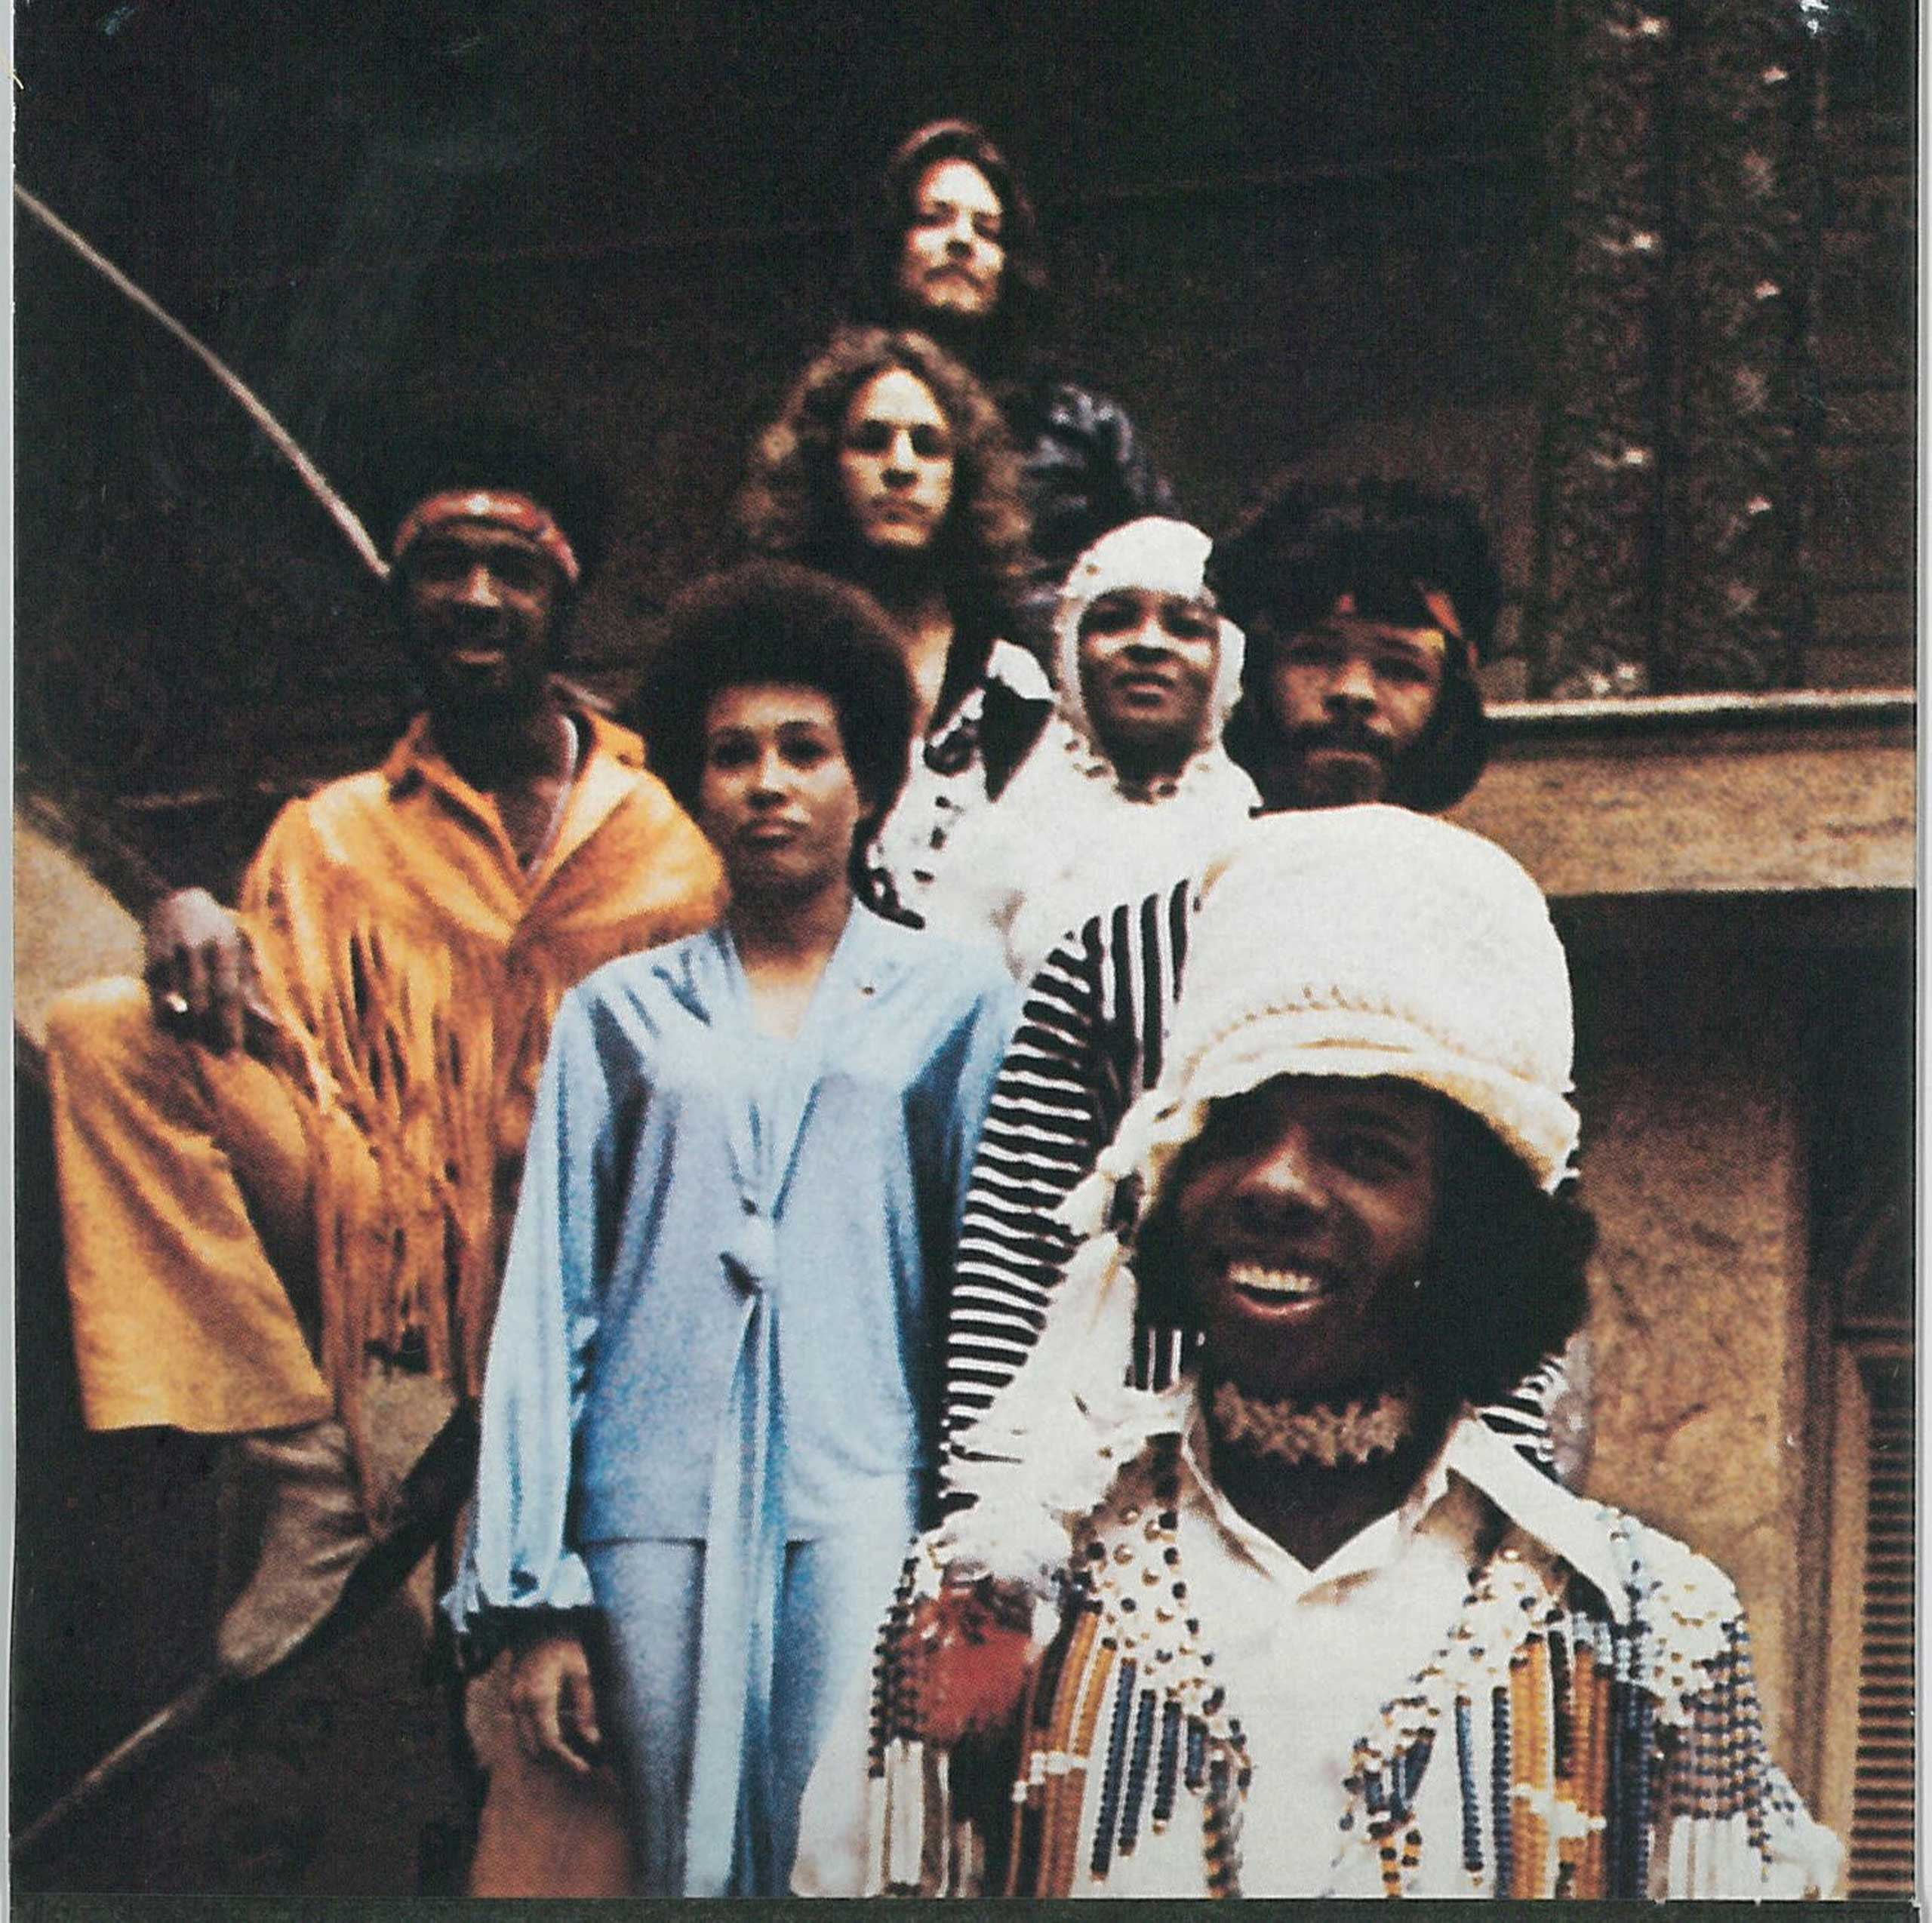 Sly and the Family Stone's 1969 album Stand! was an important influence on soul and funk and is among the most sampled records of all time. (Epic Records/Library of Congress)